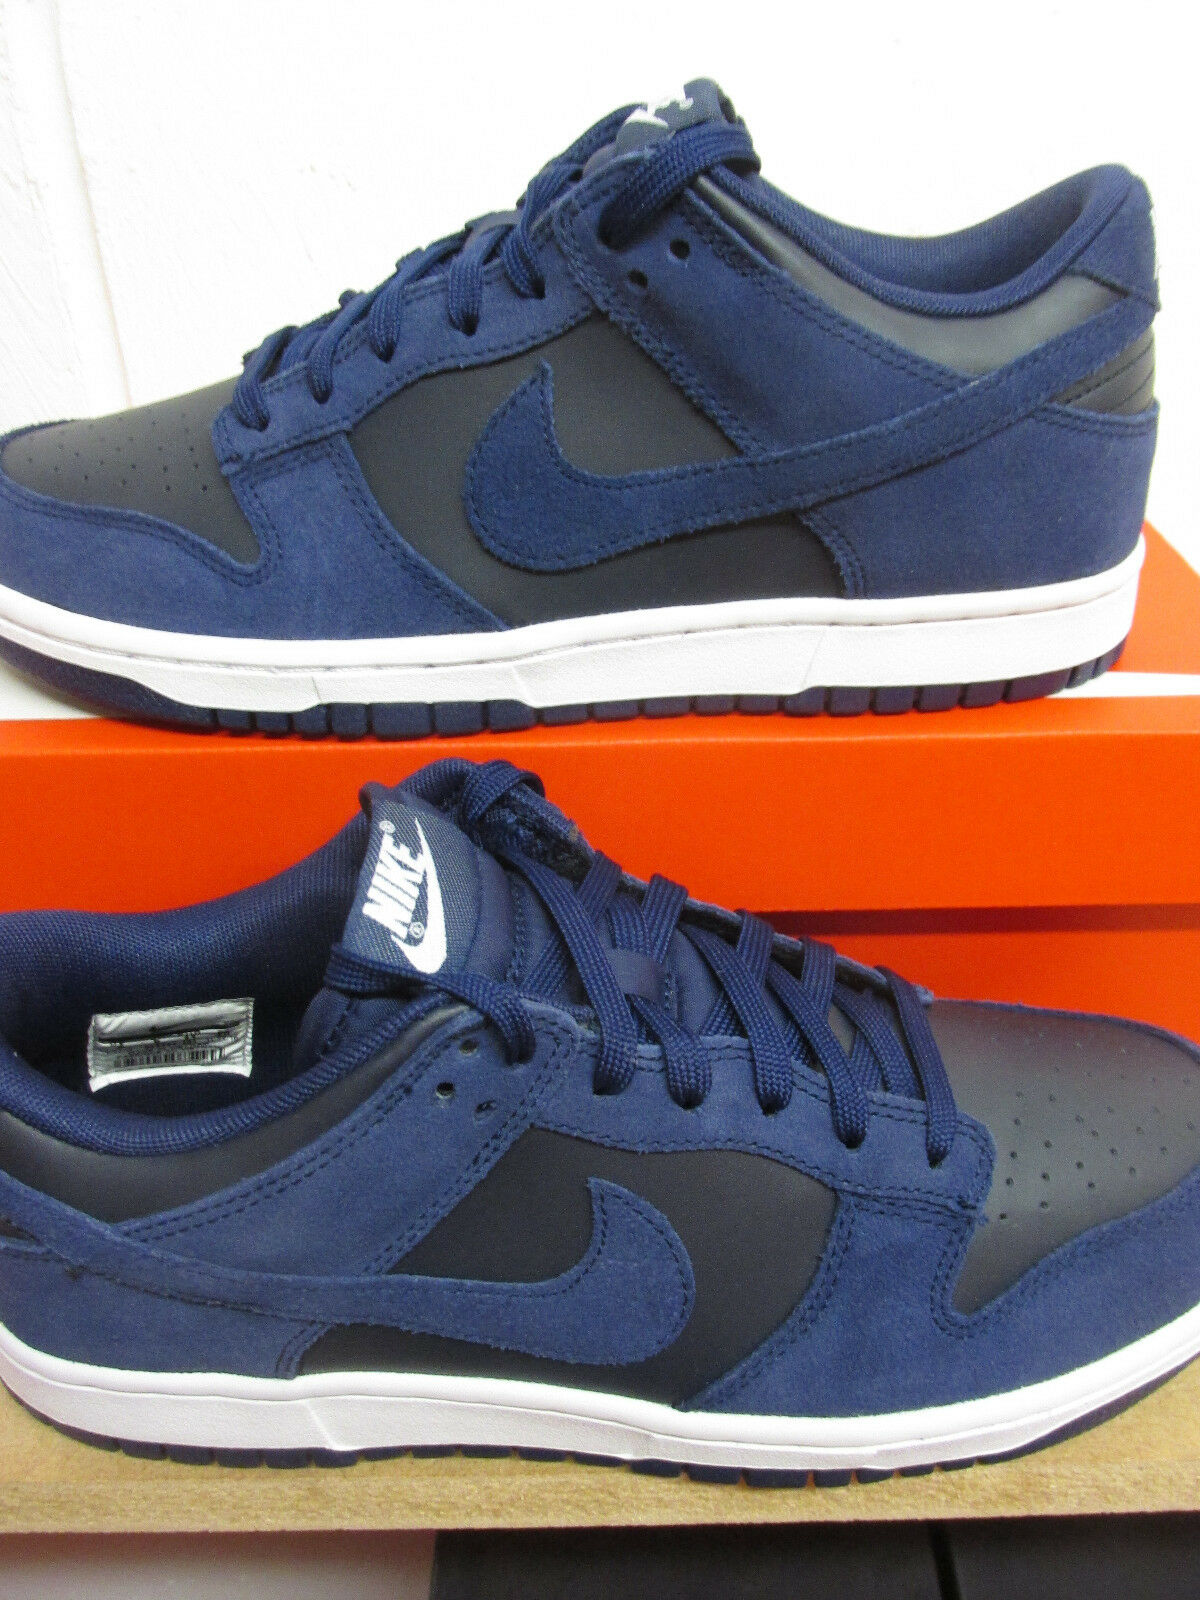 Nike Nike Nike Dunk Low Hommes Trainers 904234 401 Baskets Chaussures 35fe59